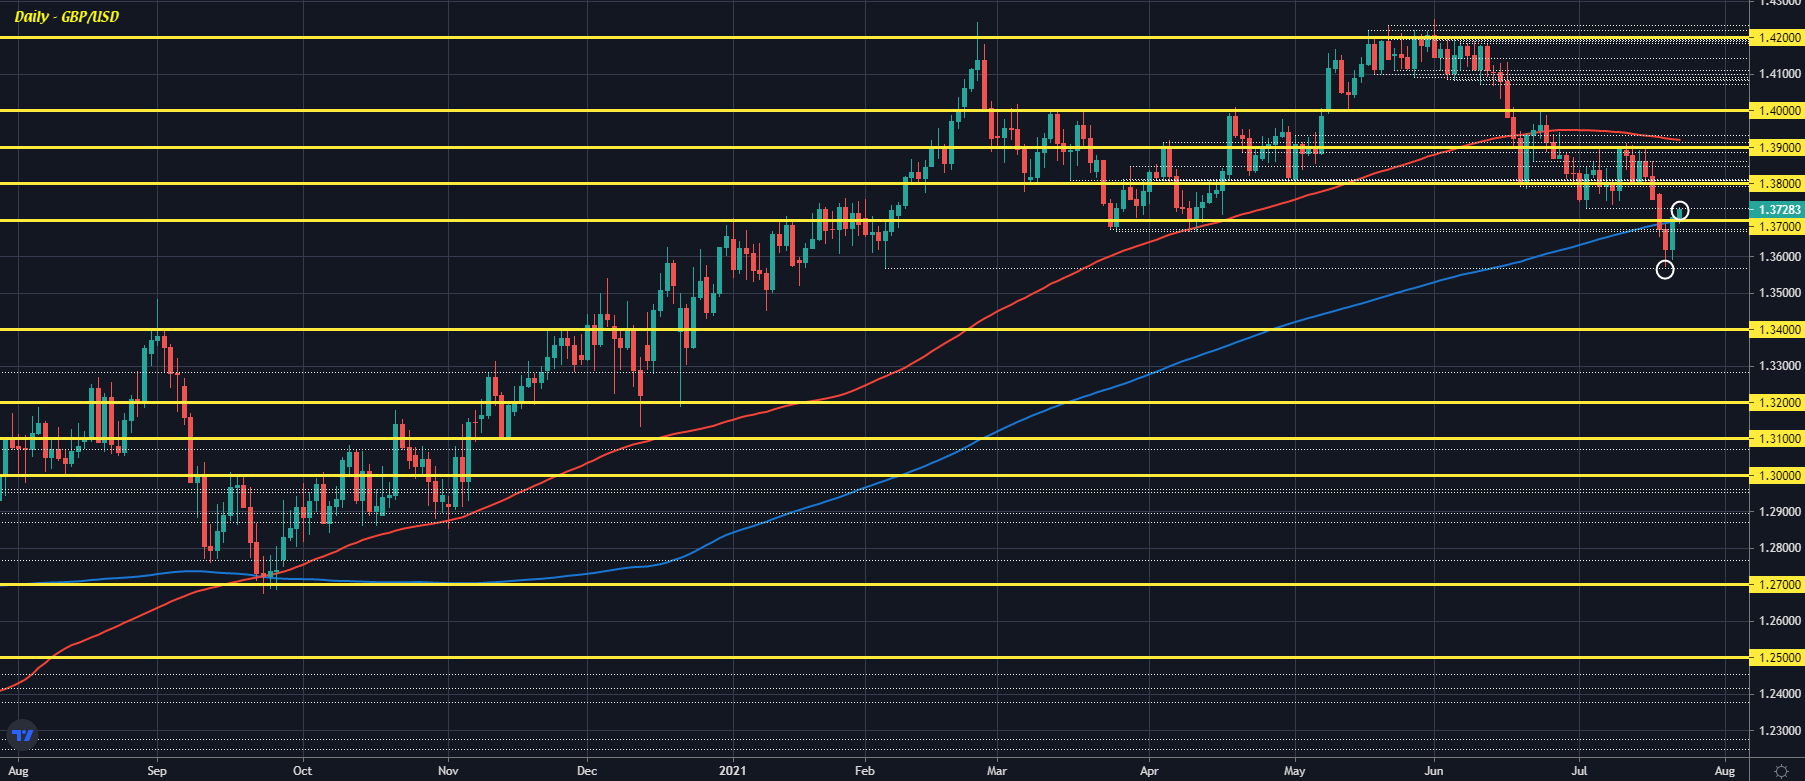 Cable a little higher to start the day, sticks with the bounce from yesterday